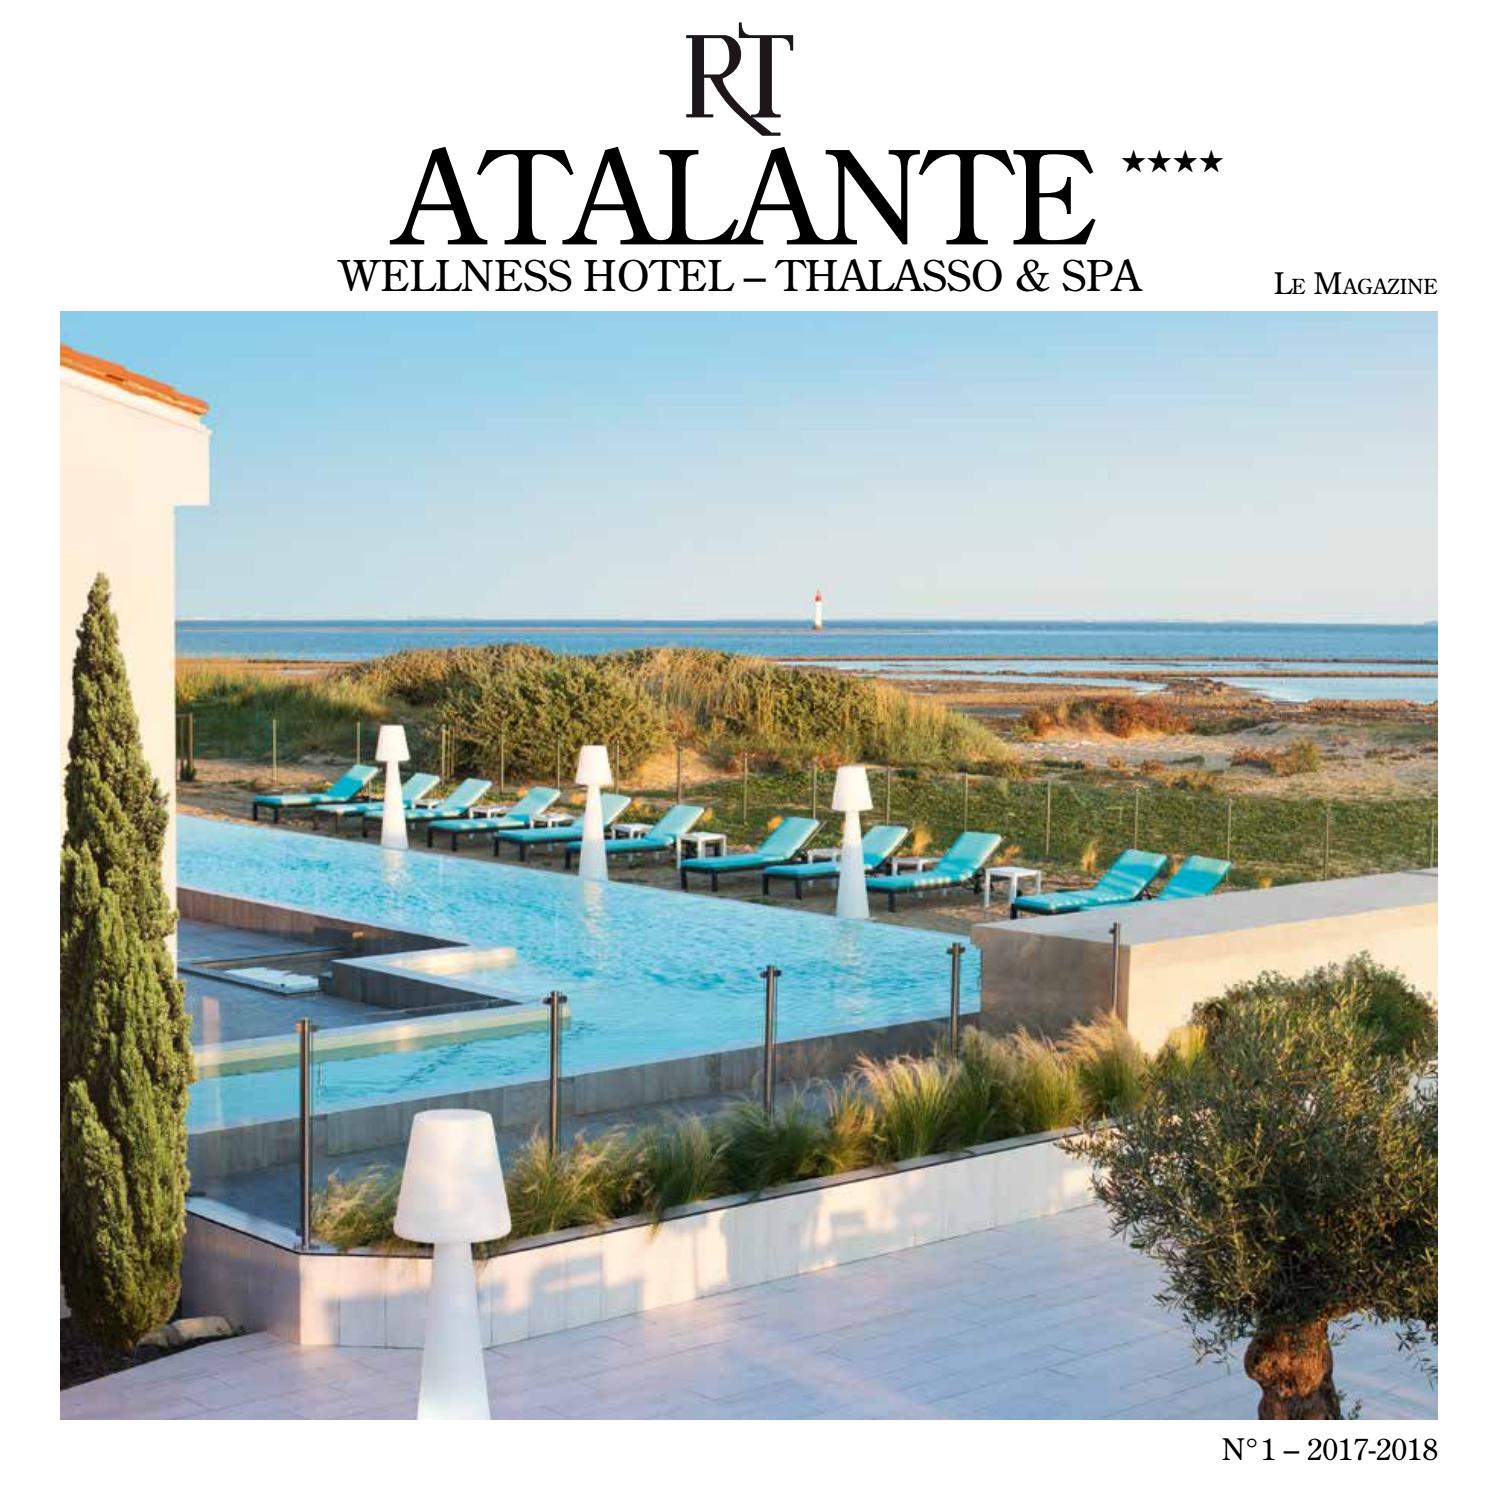 Rt atalante wellness h tel thalasso spa by for Agrandissement maison zone nh